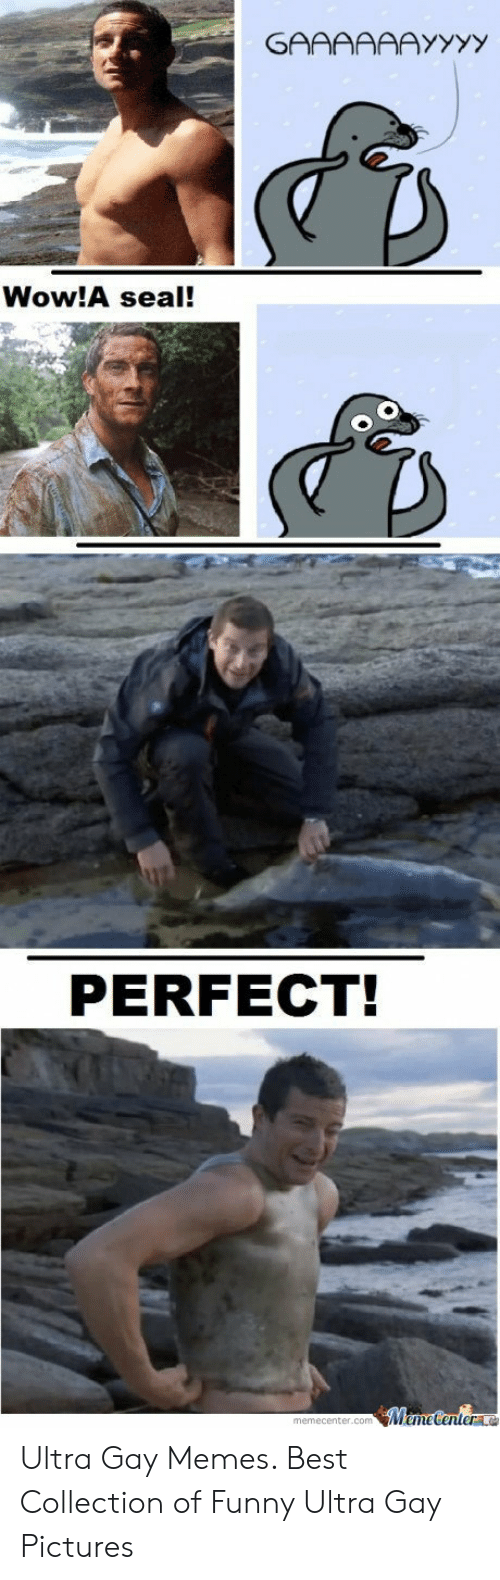 Funny, Memes, and Wow: Wow!A seal!  PERFECT!  memecenter.commecenterla Ultra Gay Memes. Best Collection of Funny Ultra Gay Pictures